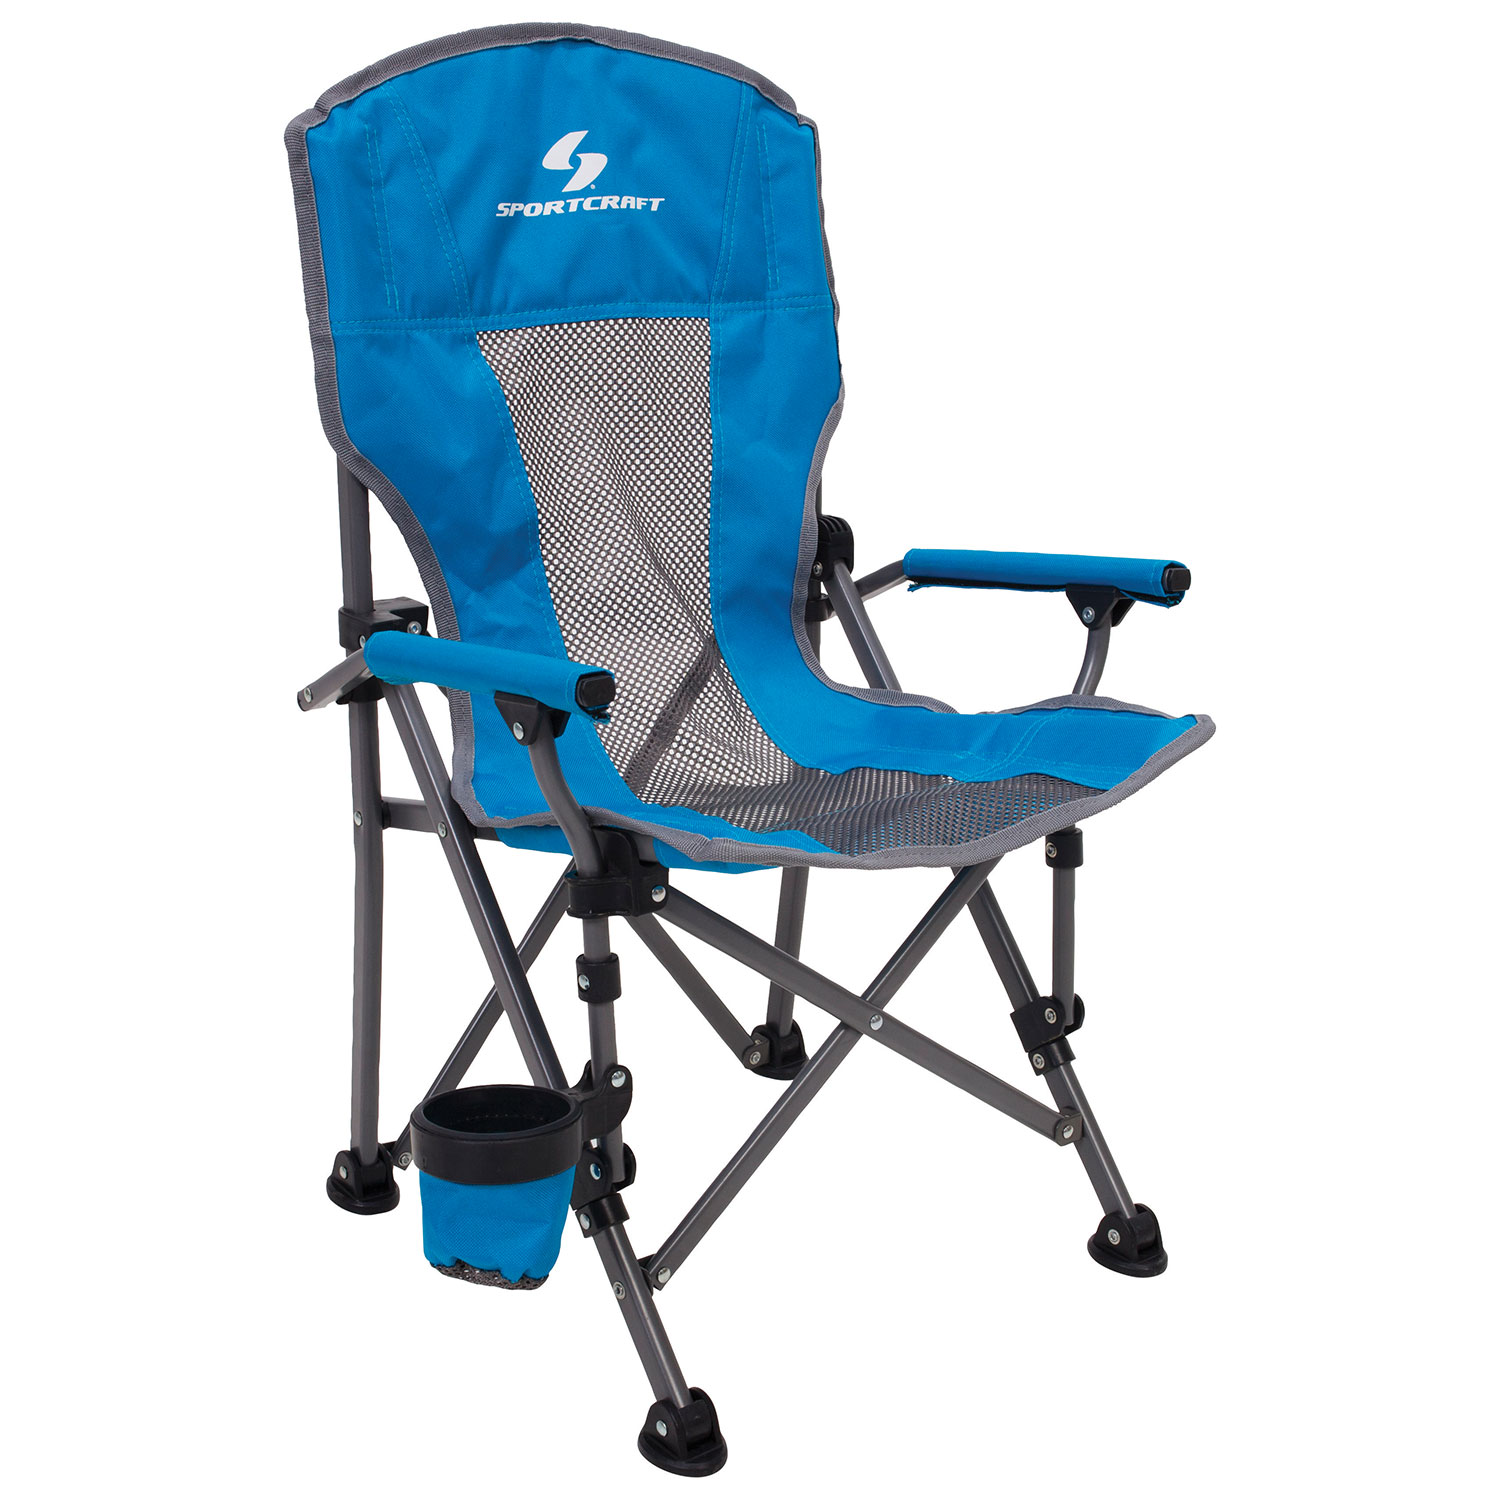 Sportcraft Kids Camping Chair Blue Camping Chairs Best Buy